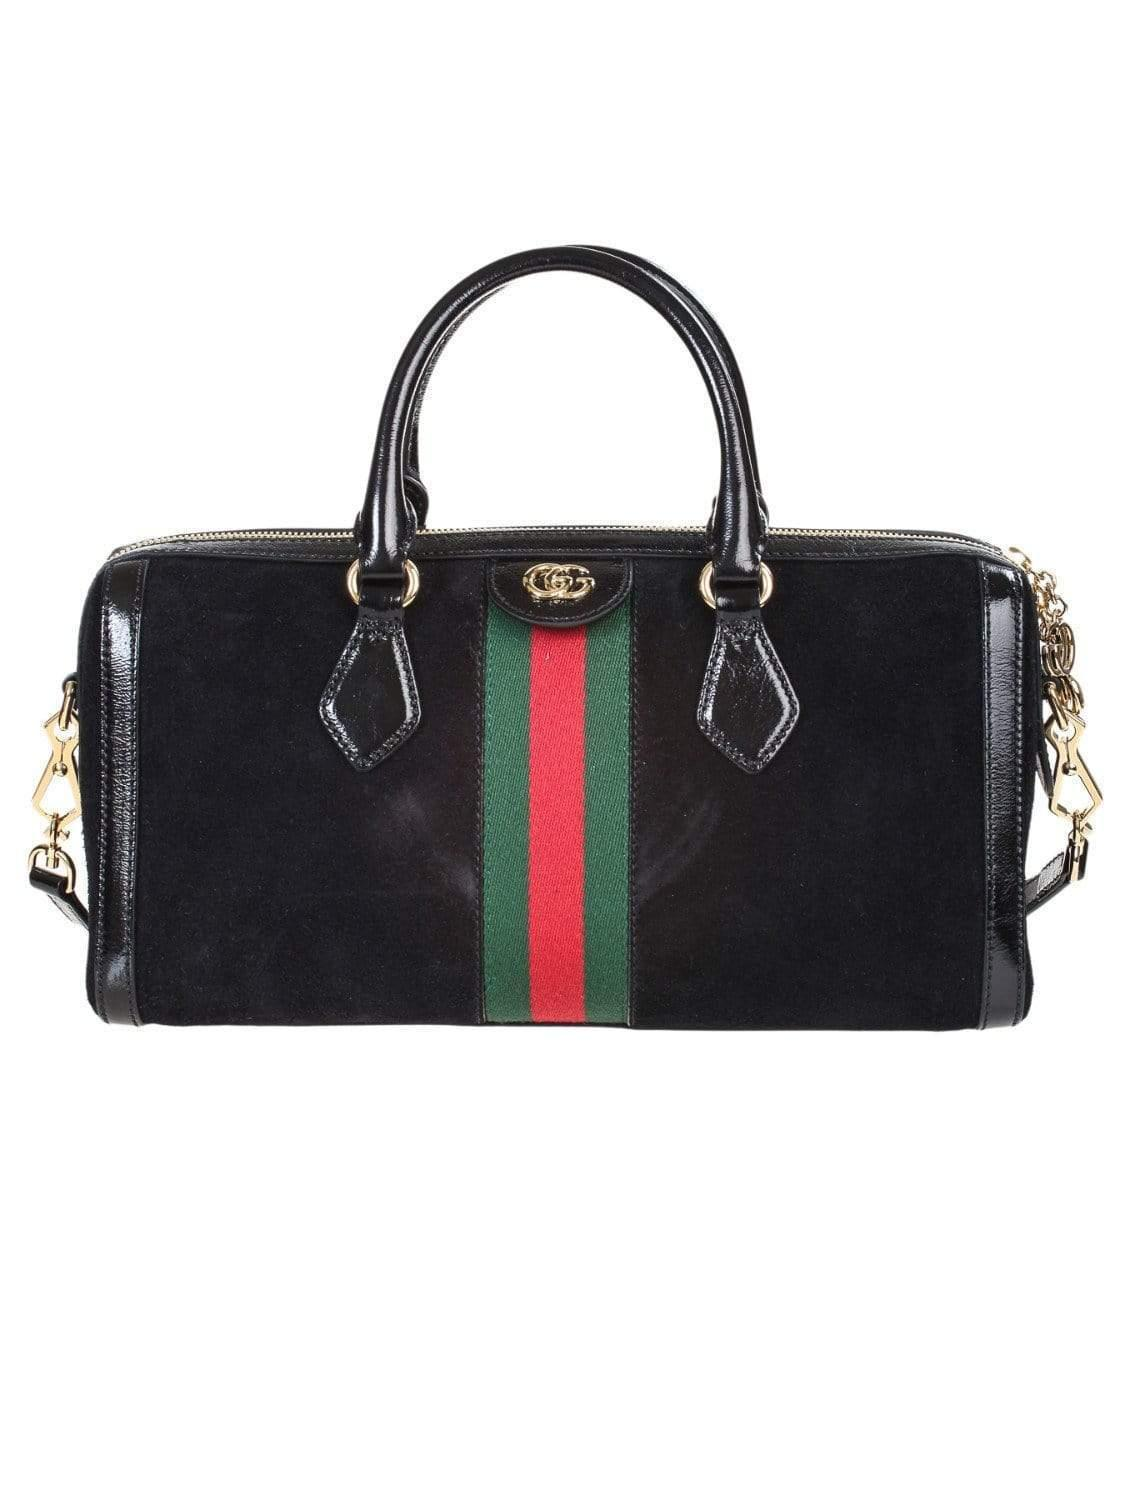 dfea748de10a Lyst - Gucci Ophidia Patent Leather-trimmed Suede Tote in Black ...